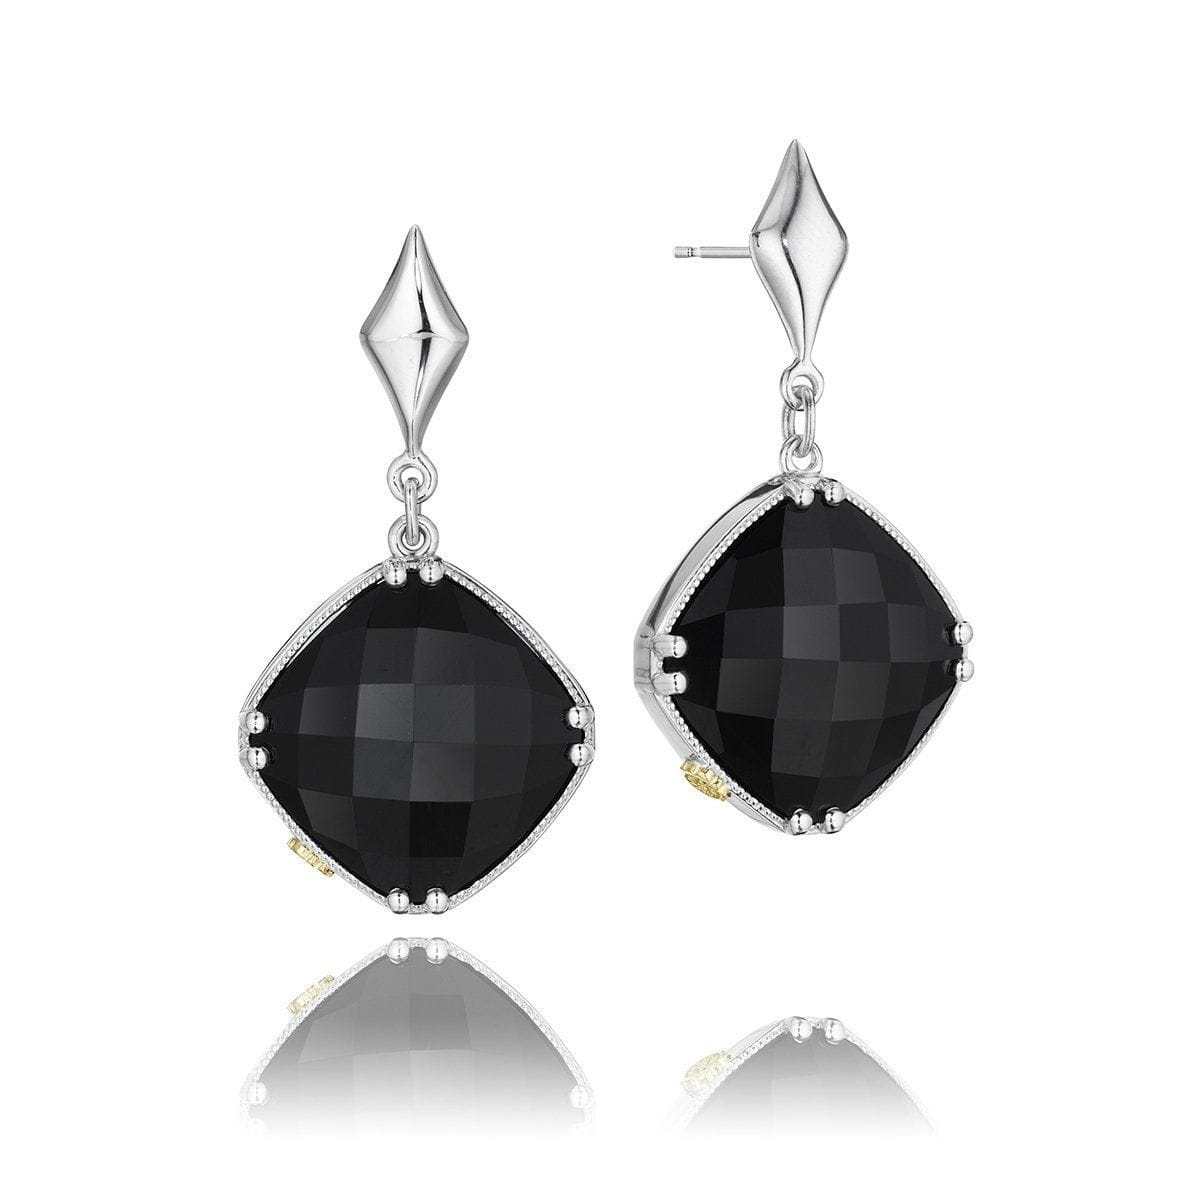 Silver Clear Quartz Black Onyx Earrings - SE16719